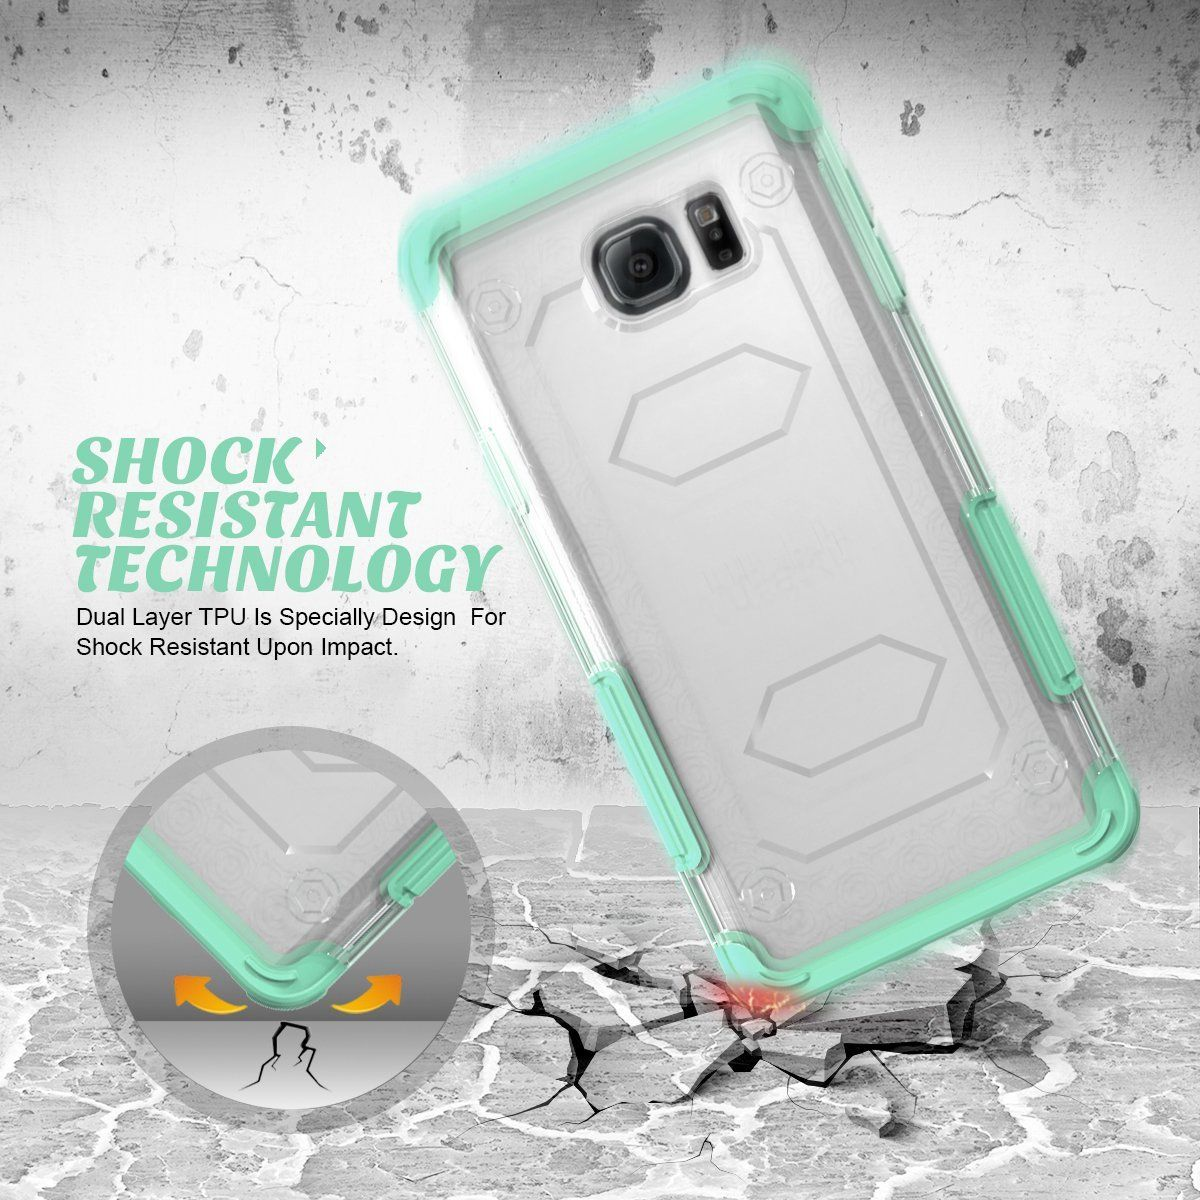 Galaxy note 7 official image gallery feast your eyes on samsung - Amazon Com Galaxy Note 5 Case Ulak Nutcandy Series Slim